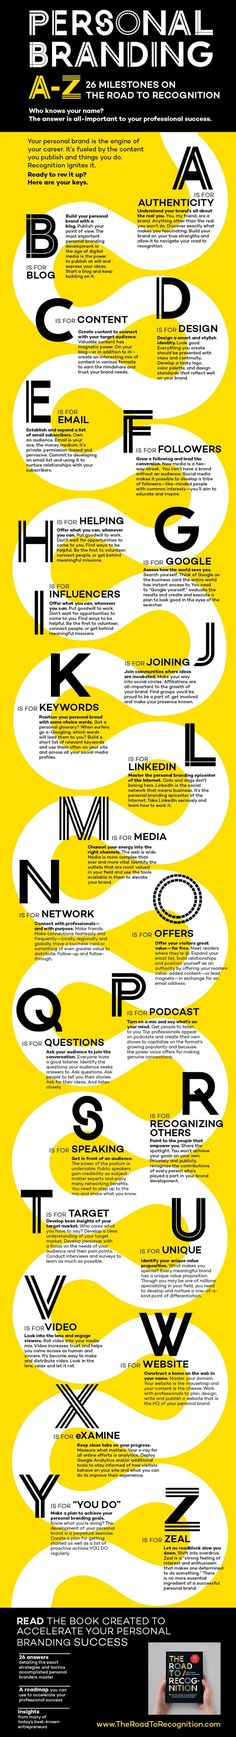 An A to Z Guide to Personal Branding | Convince and Convert: Social Media Consulting and Content Marketing Consulting